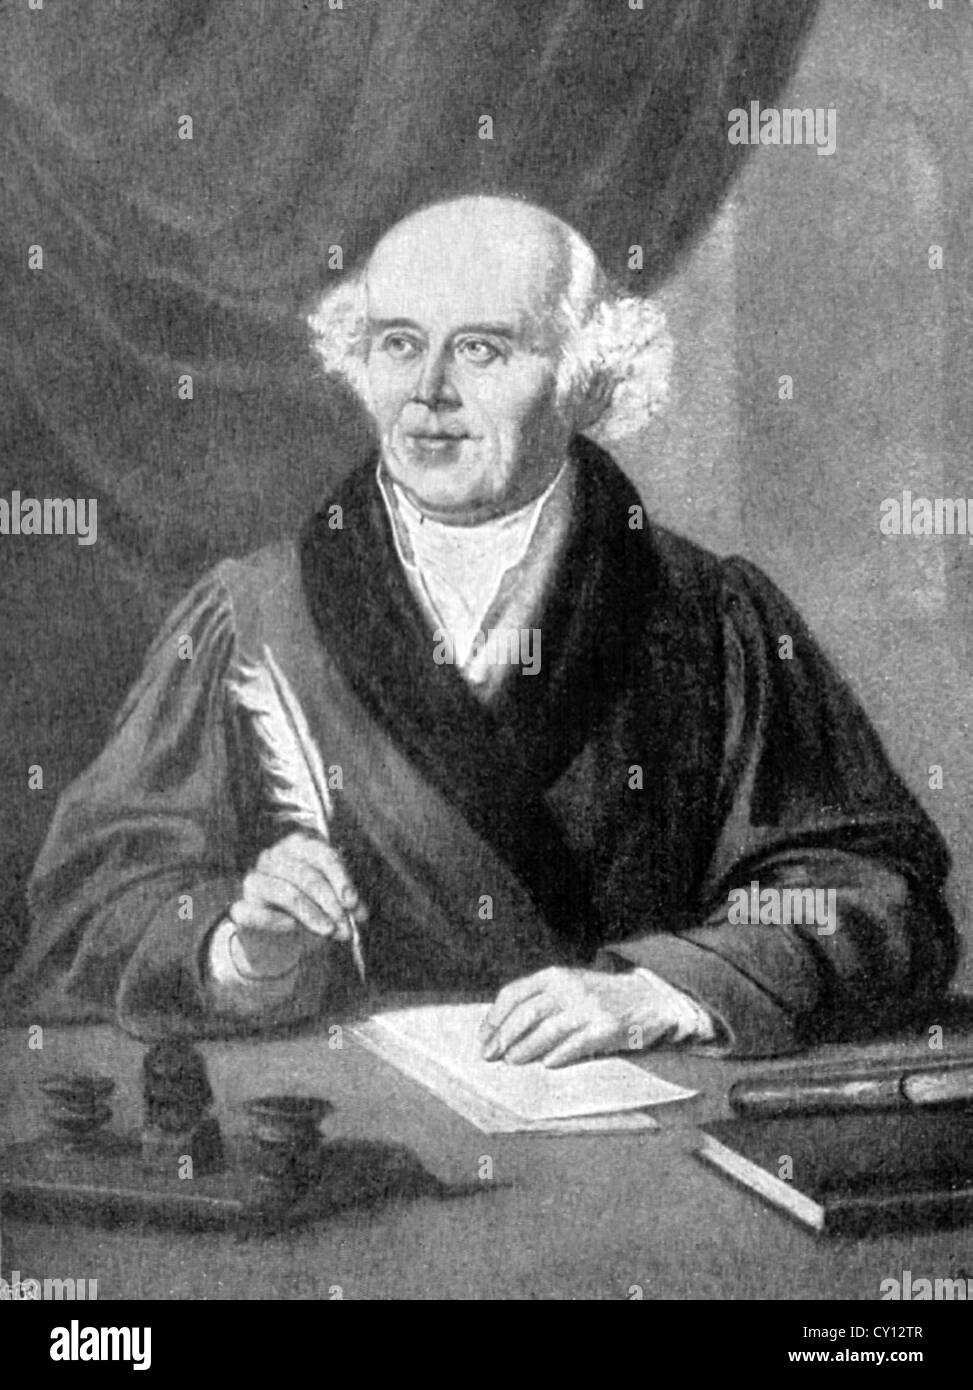 Christian Friedrich Samuel Hahnemann creator of homeopathy. - Stock Image